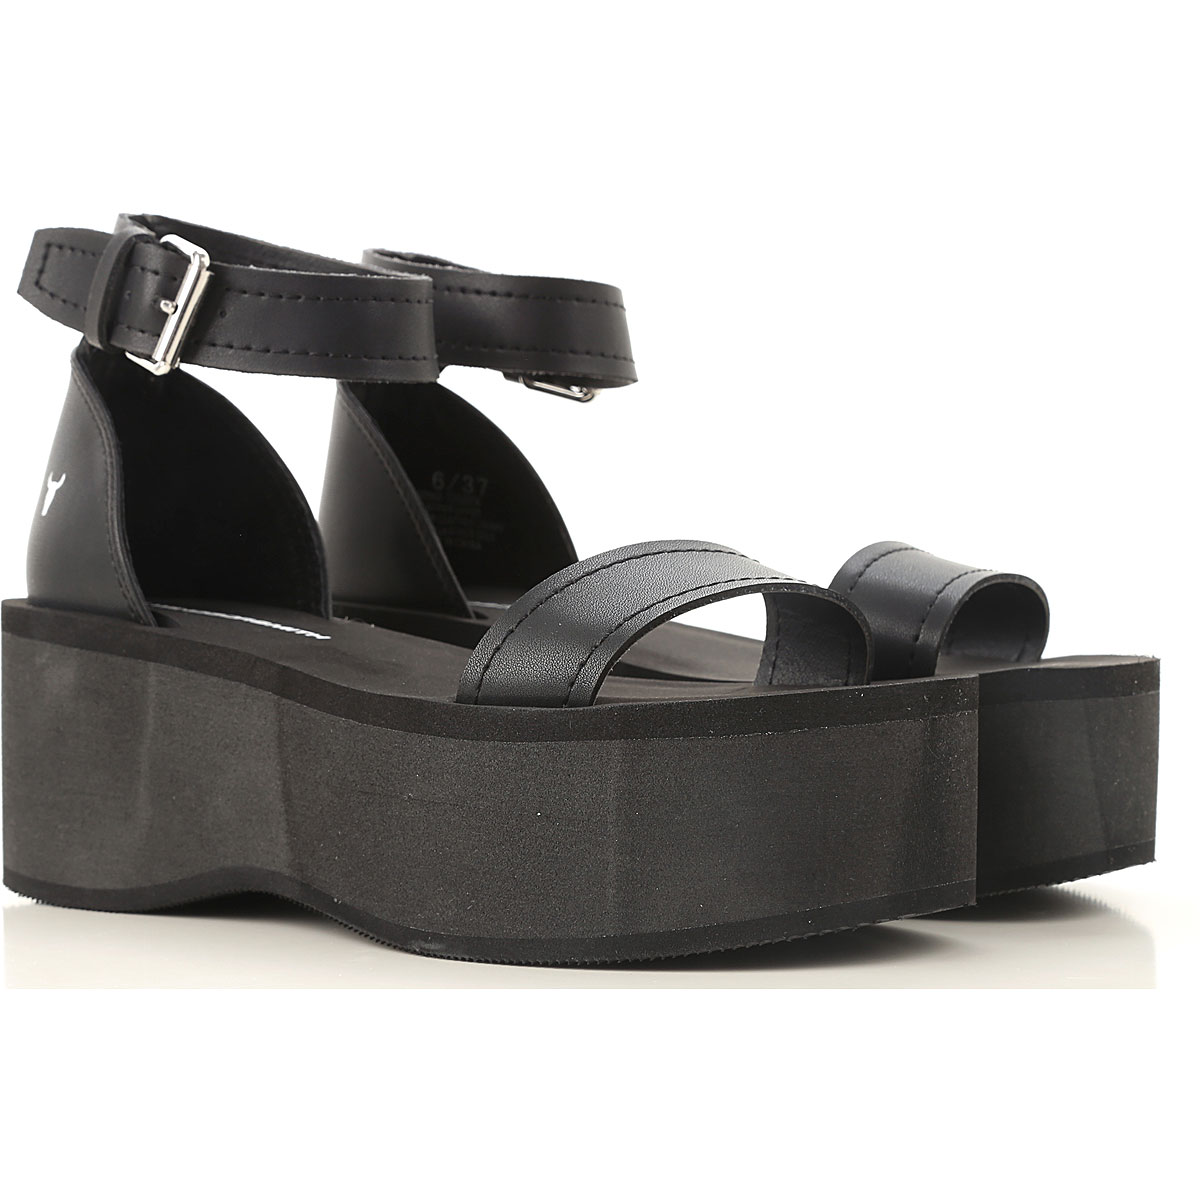 Windsor Smith Sandals for Women On Sale in Outlet, Black, Leather, 2019, USA 6 - EUR 37